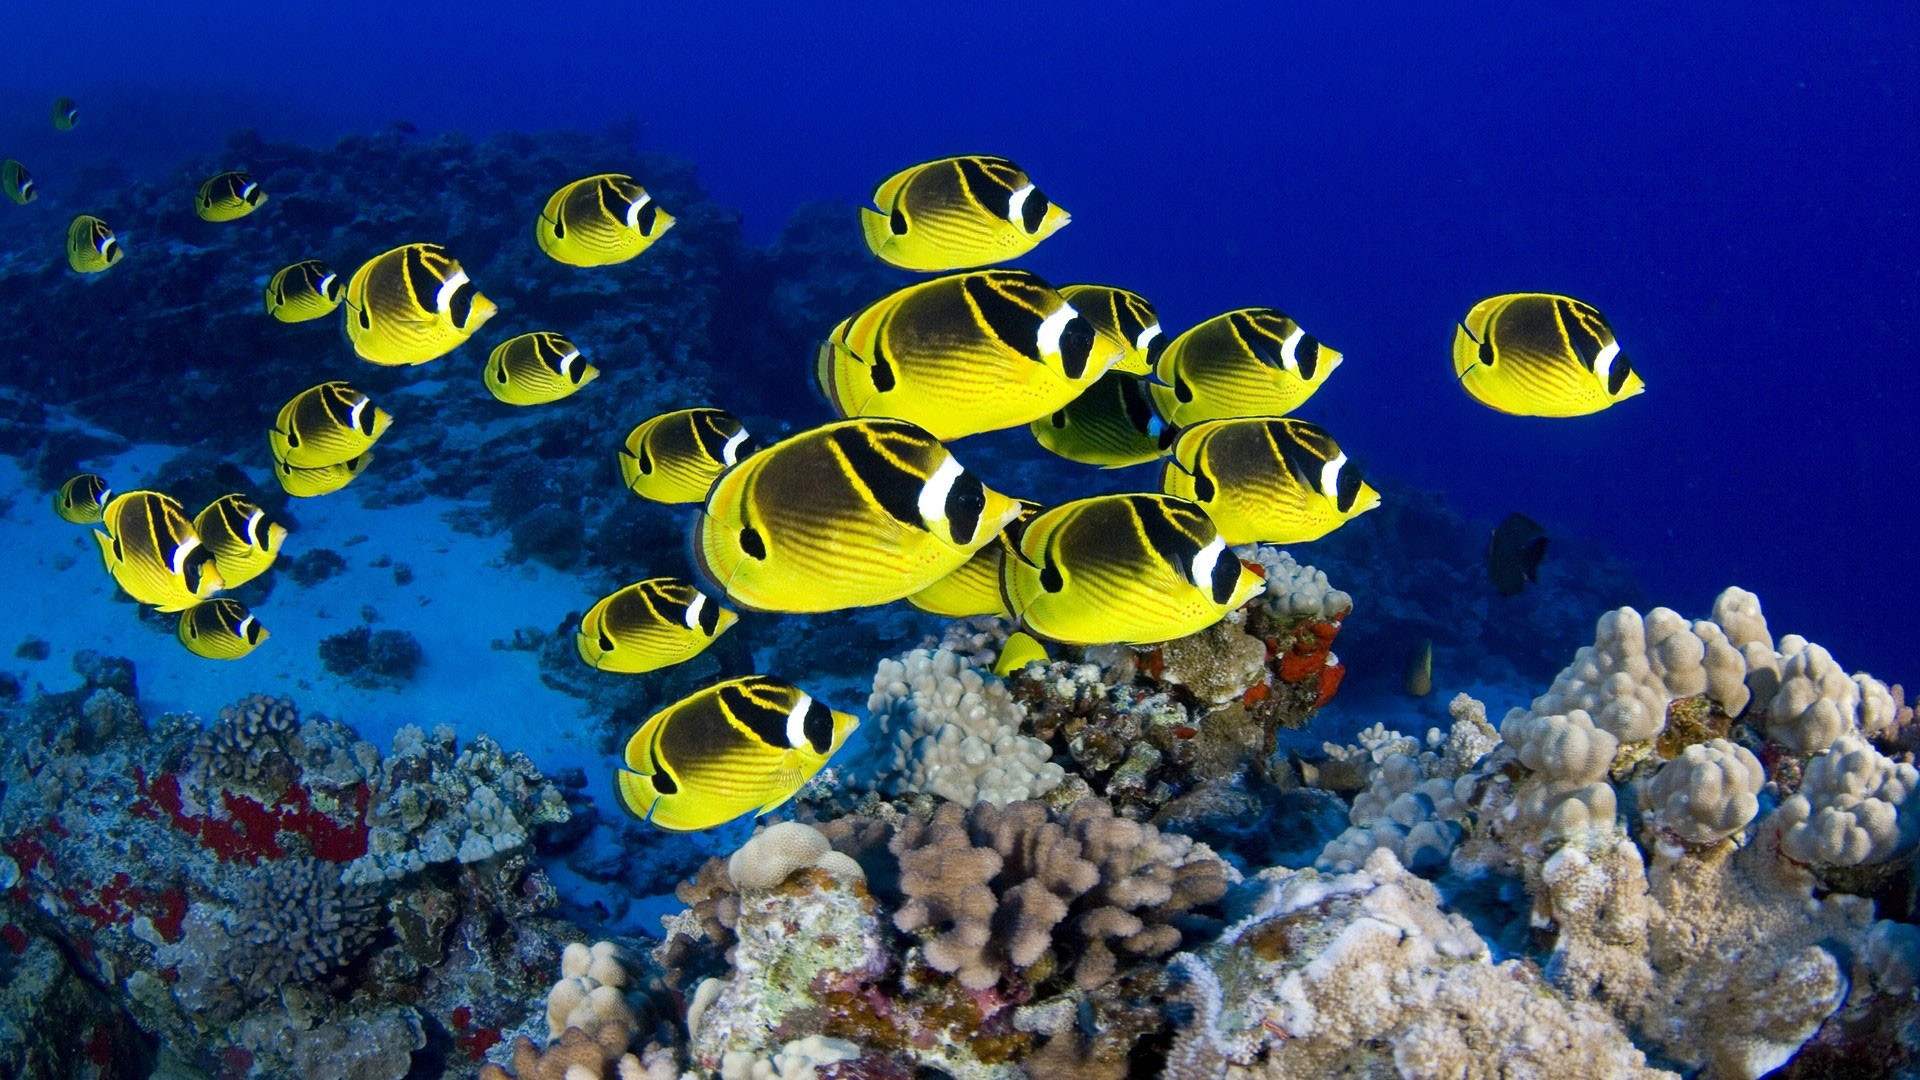 Live Yellow Marine Fish wallpapers (44 Wallpapers)